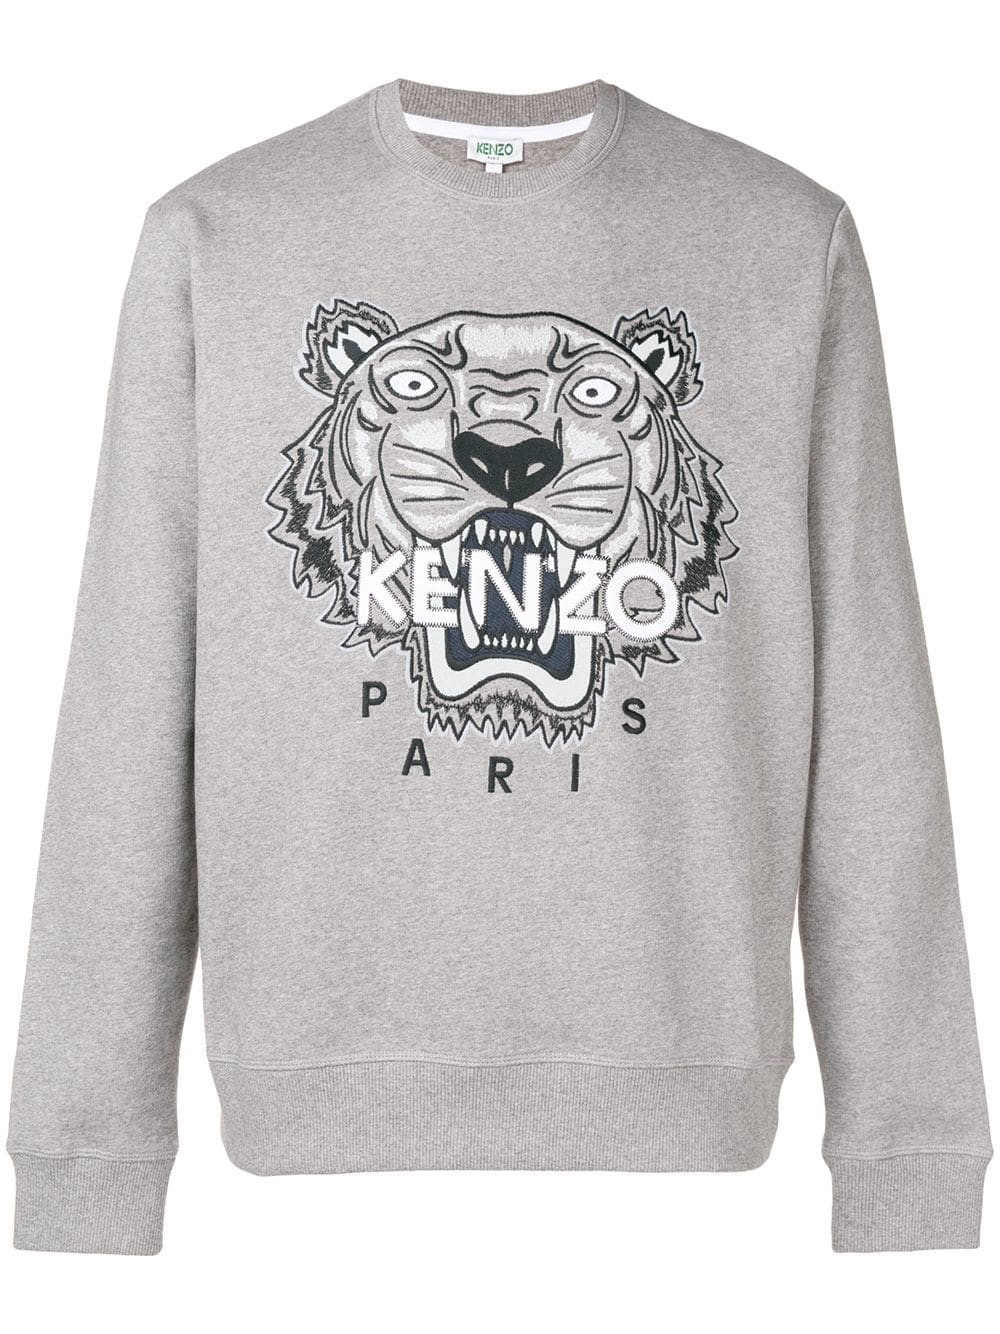 a415fbb4 kenzo TIGER SWEATSHIRT available on montiboutique.com - 25642